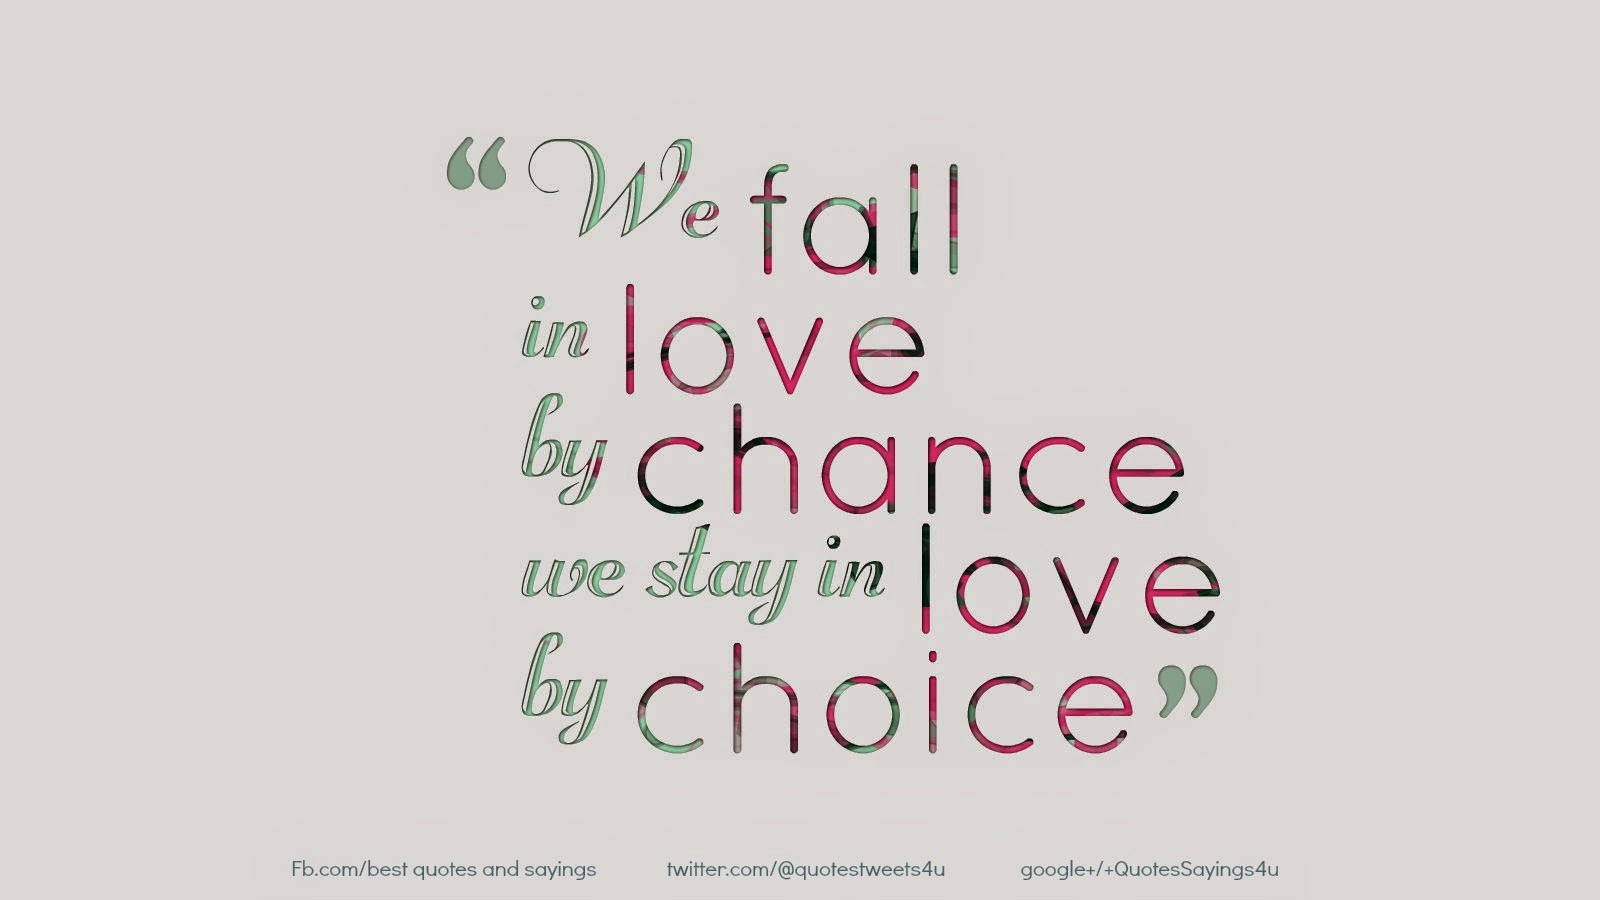 Love Choices Quotes Best Quotes And Sayings  We Fall In Lovechance We Stay In